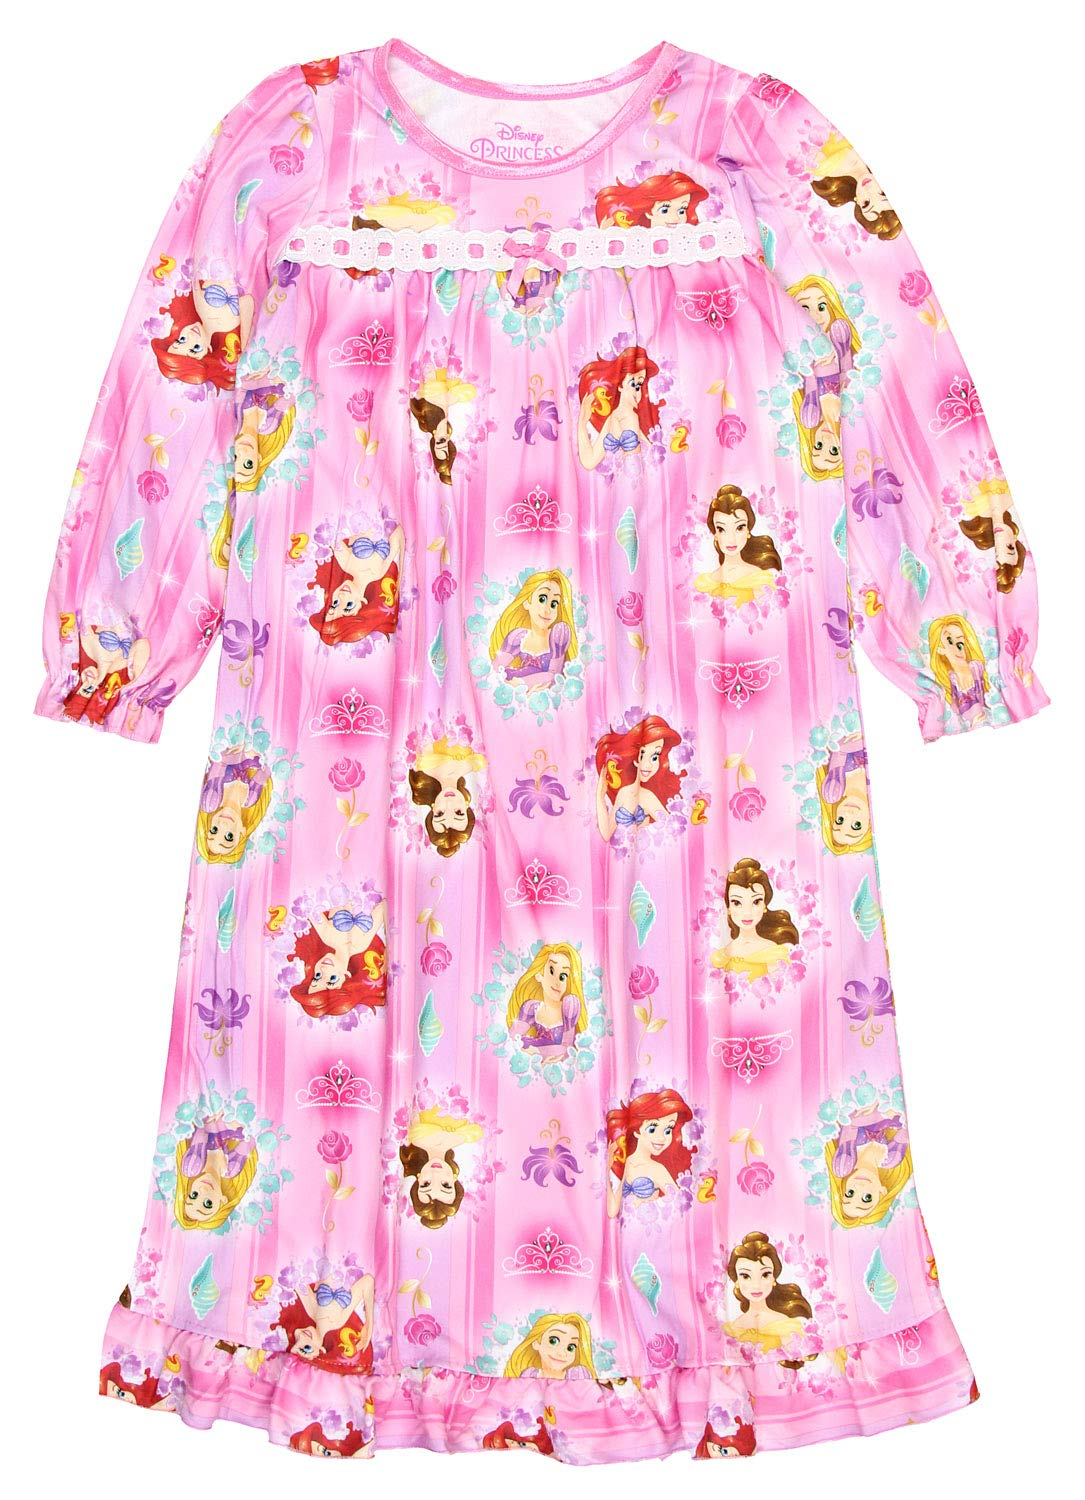 Disney Princess Toddler Girls Long Sleeve Flannel Granny Gown Nightgown Pajamas (3T, Pink) by Disney (Image #1)